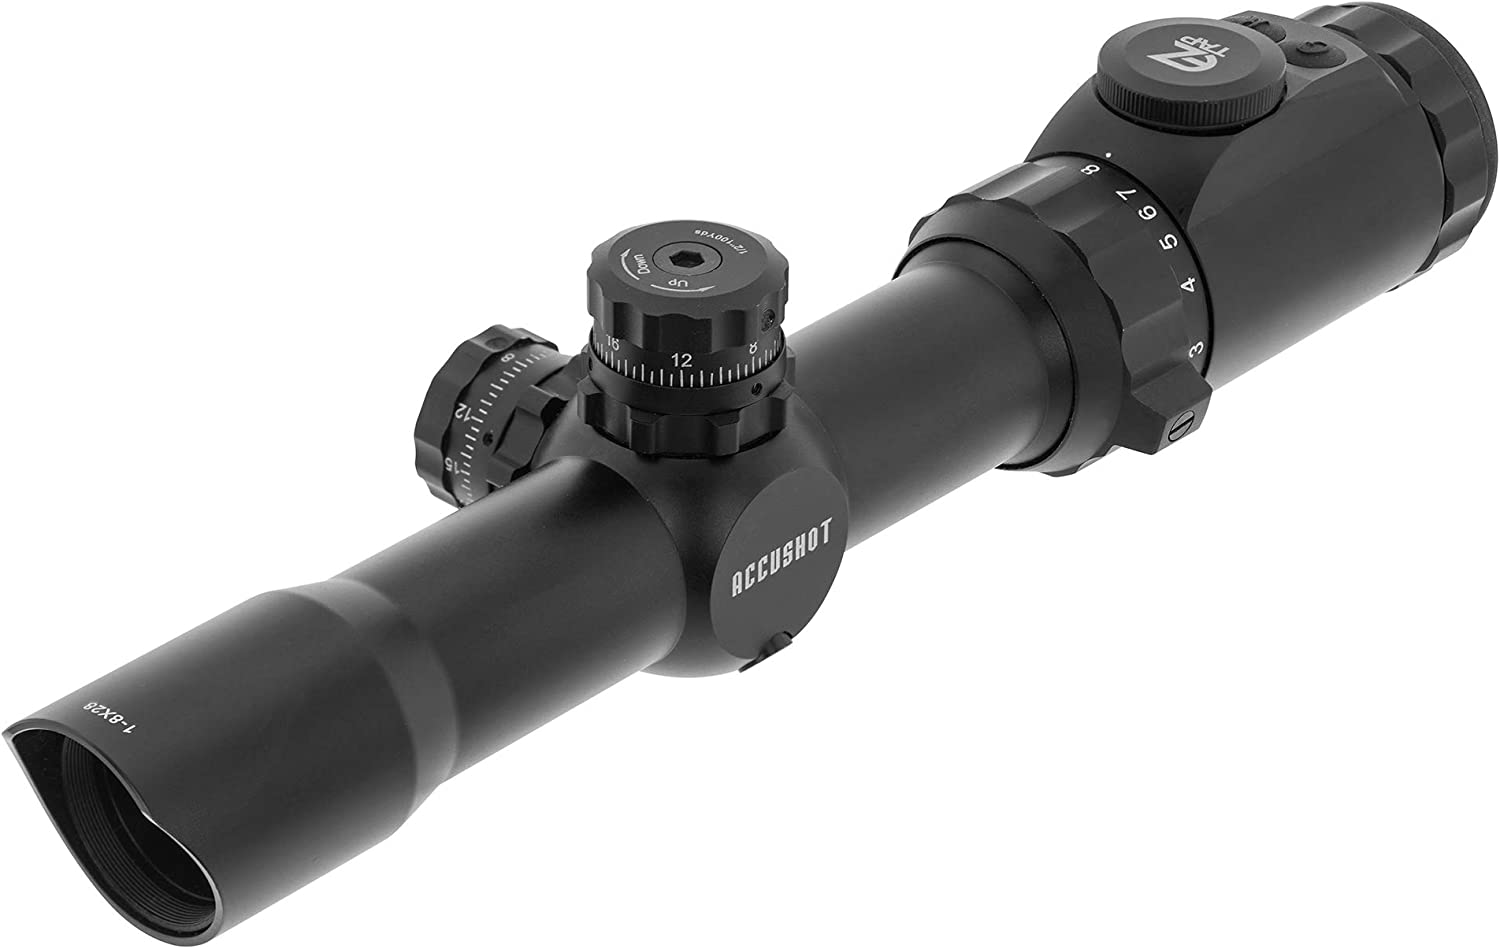 3. Leapers Inc UTG 1-8x28 mm Scope